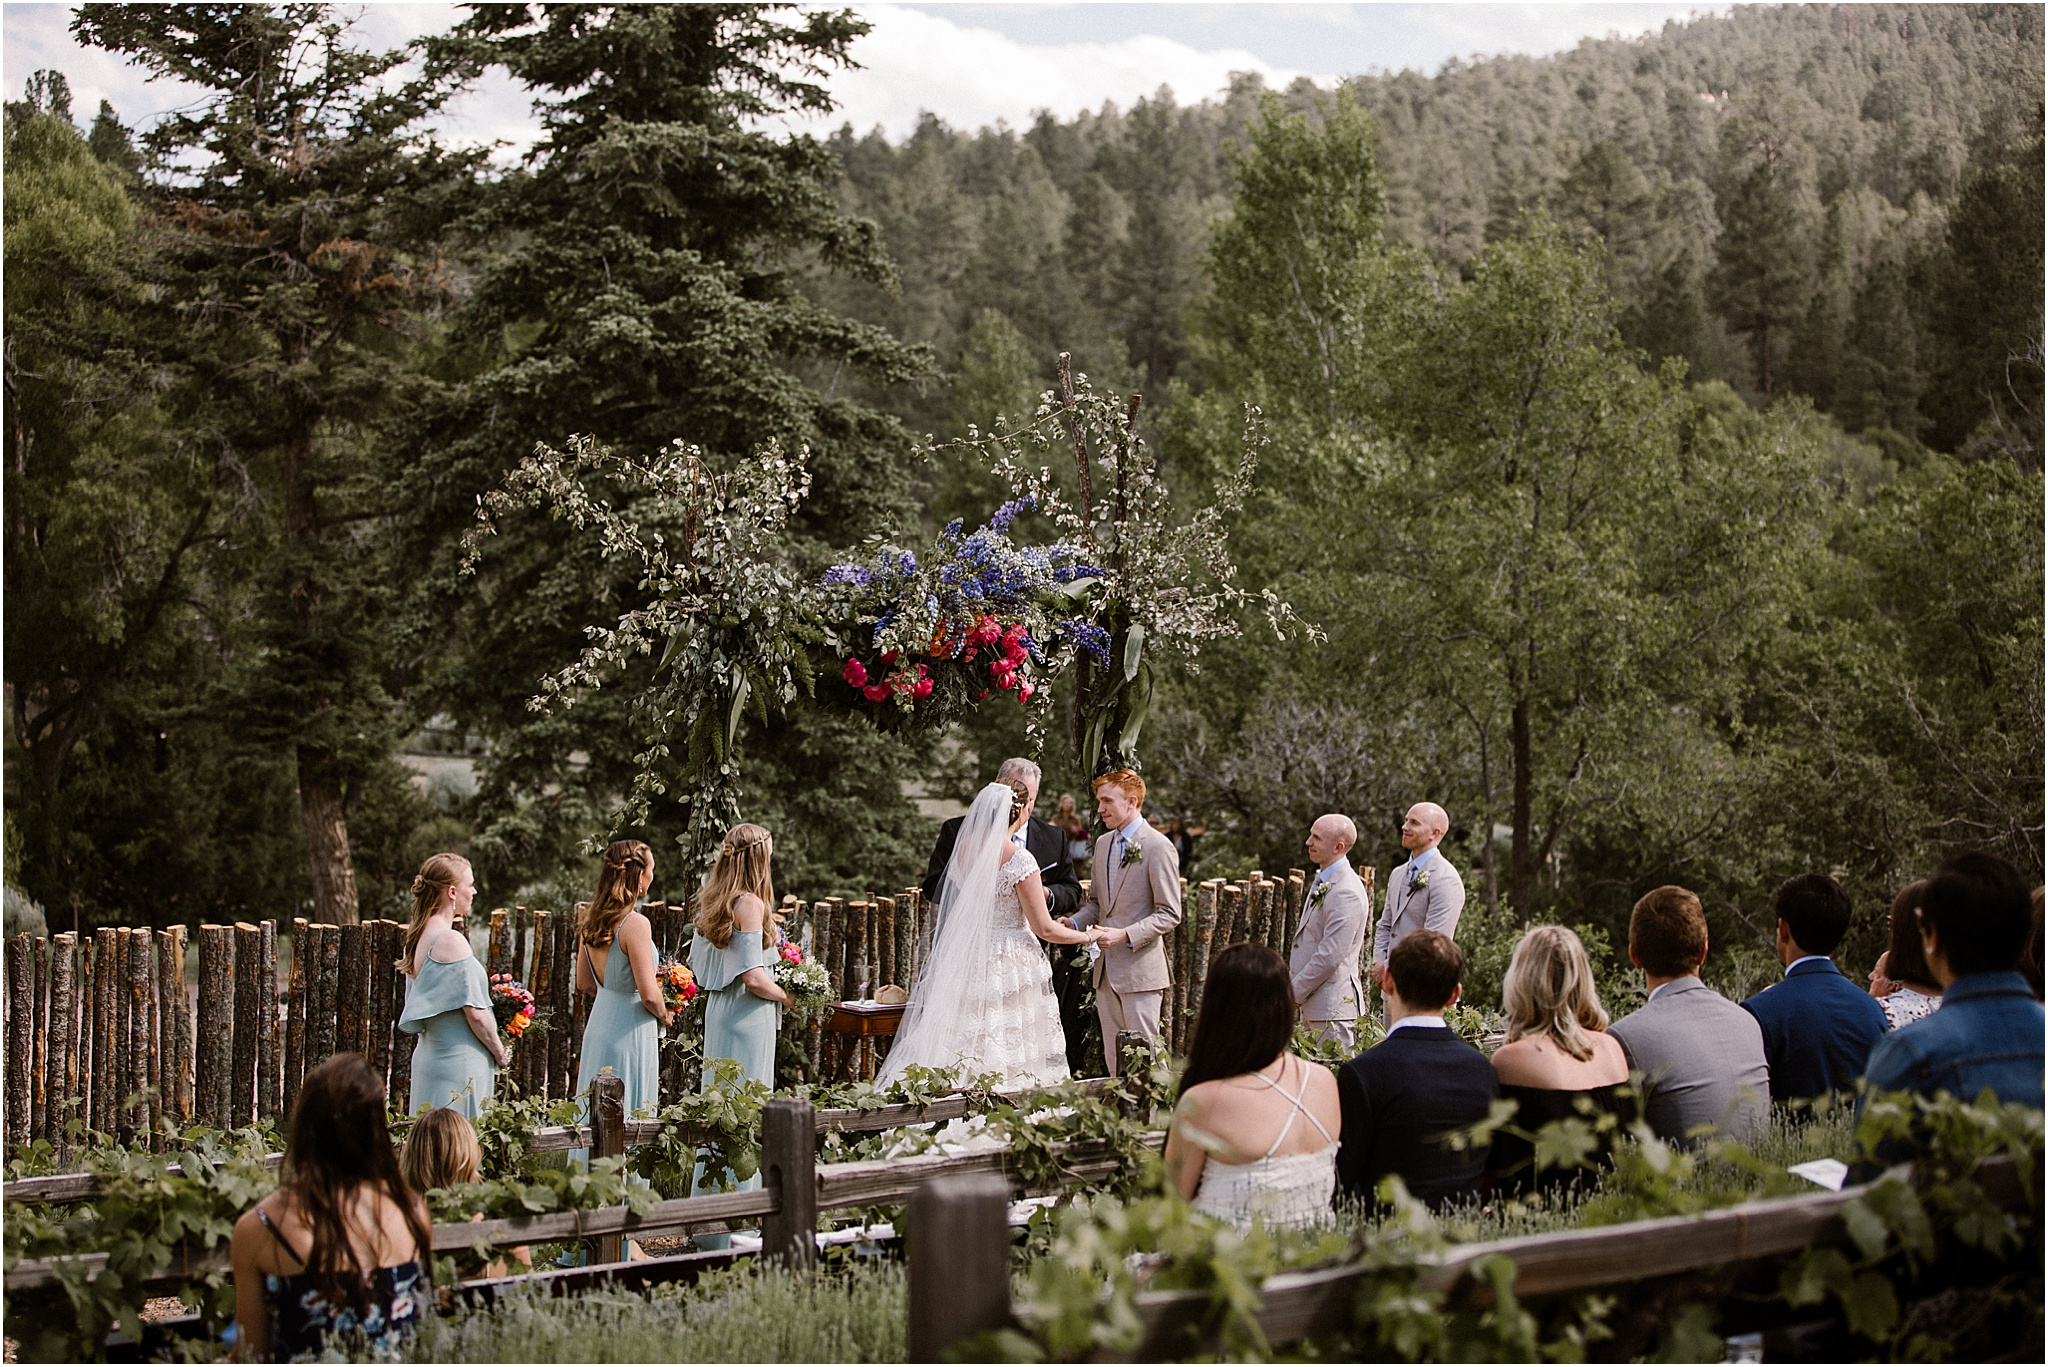 AMELIA_JASON_SANTA FE_ WEDDING_BLUE ROSE PHOTOGRAPHY60